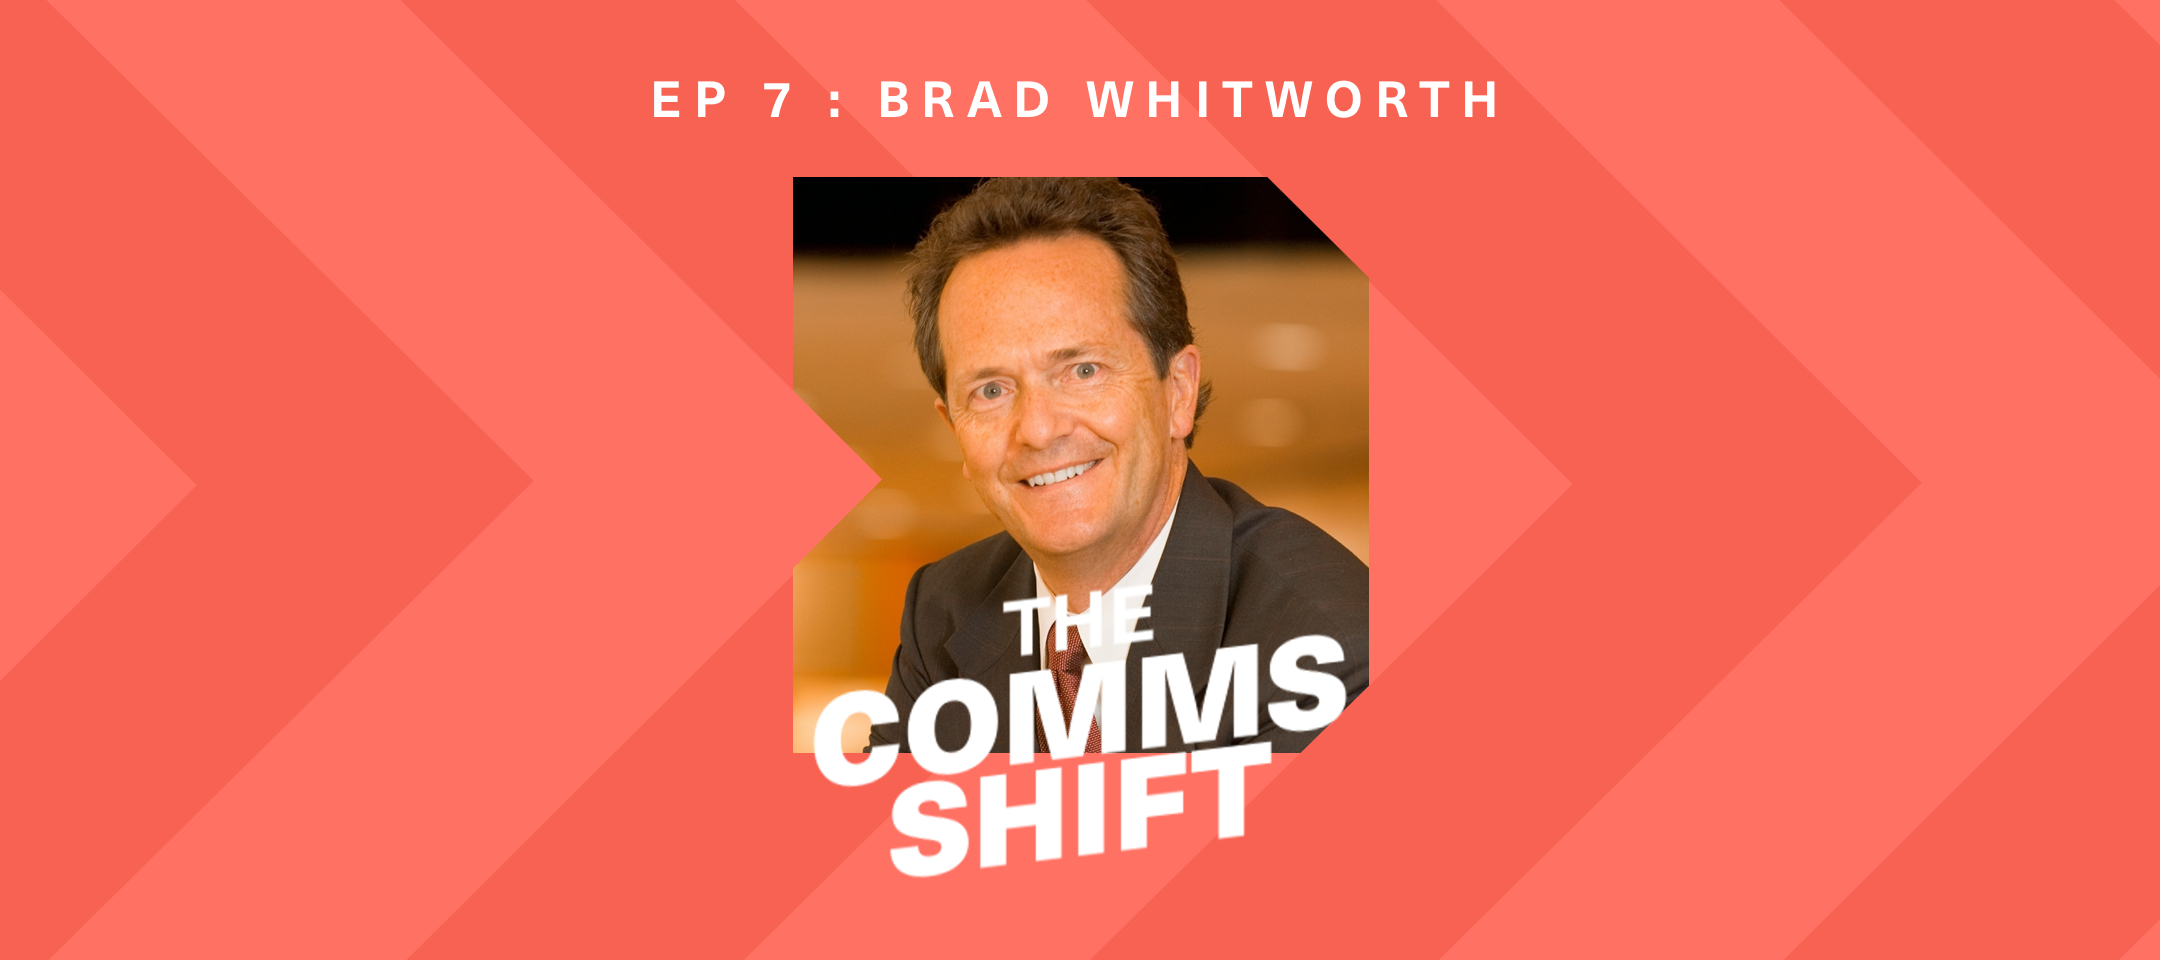 From Sender to Receiver-Centric Comms with Brad Whitworth Podcast